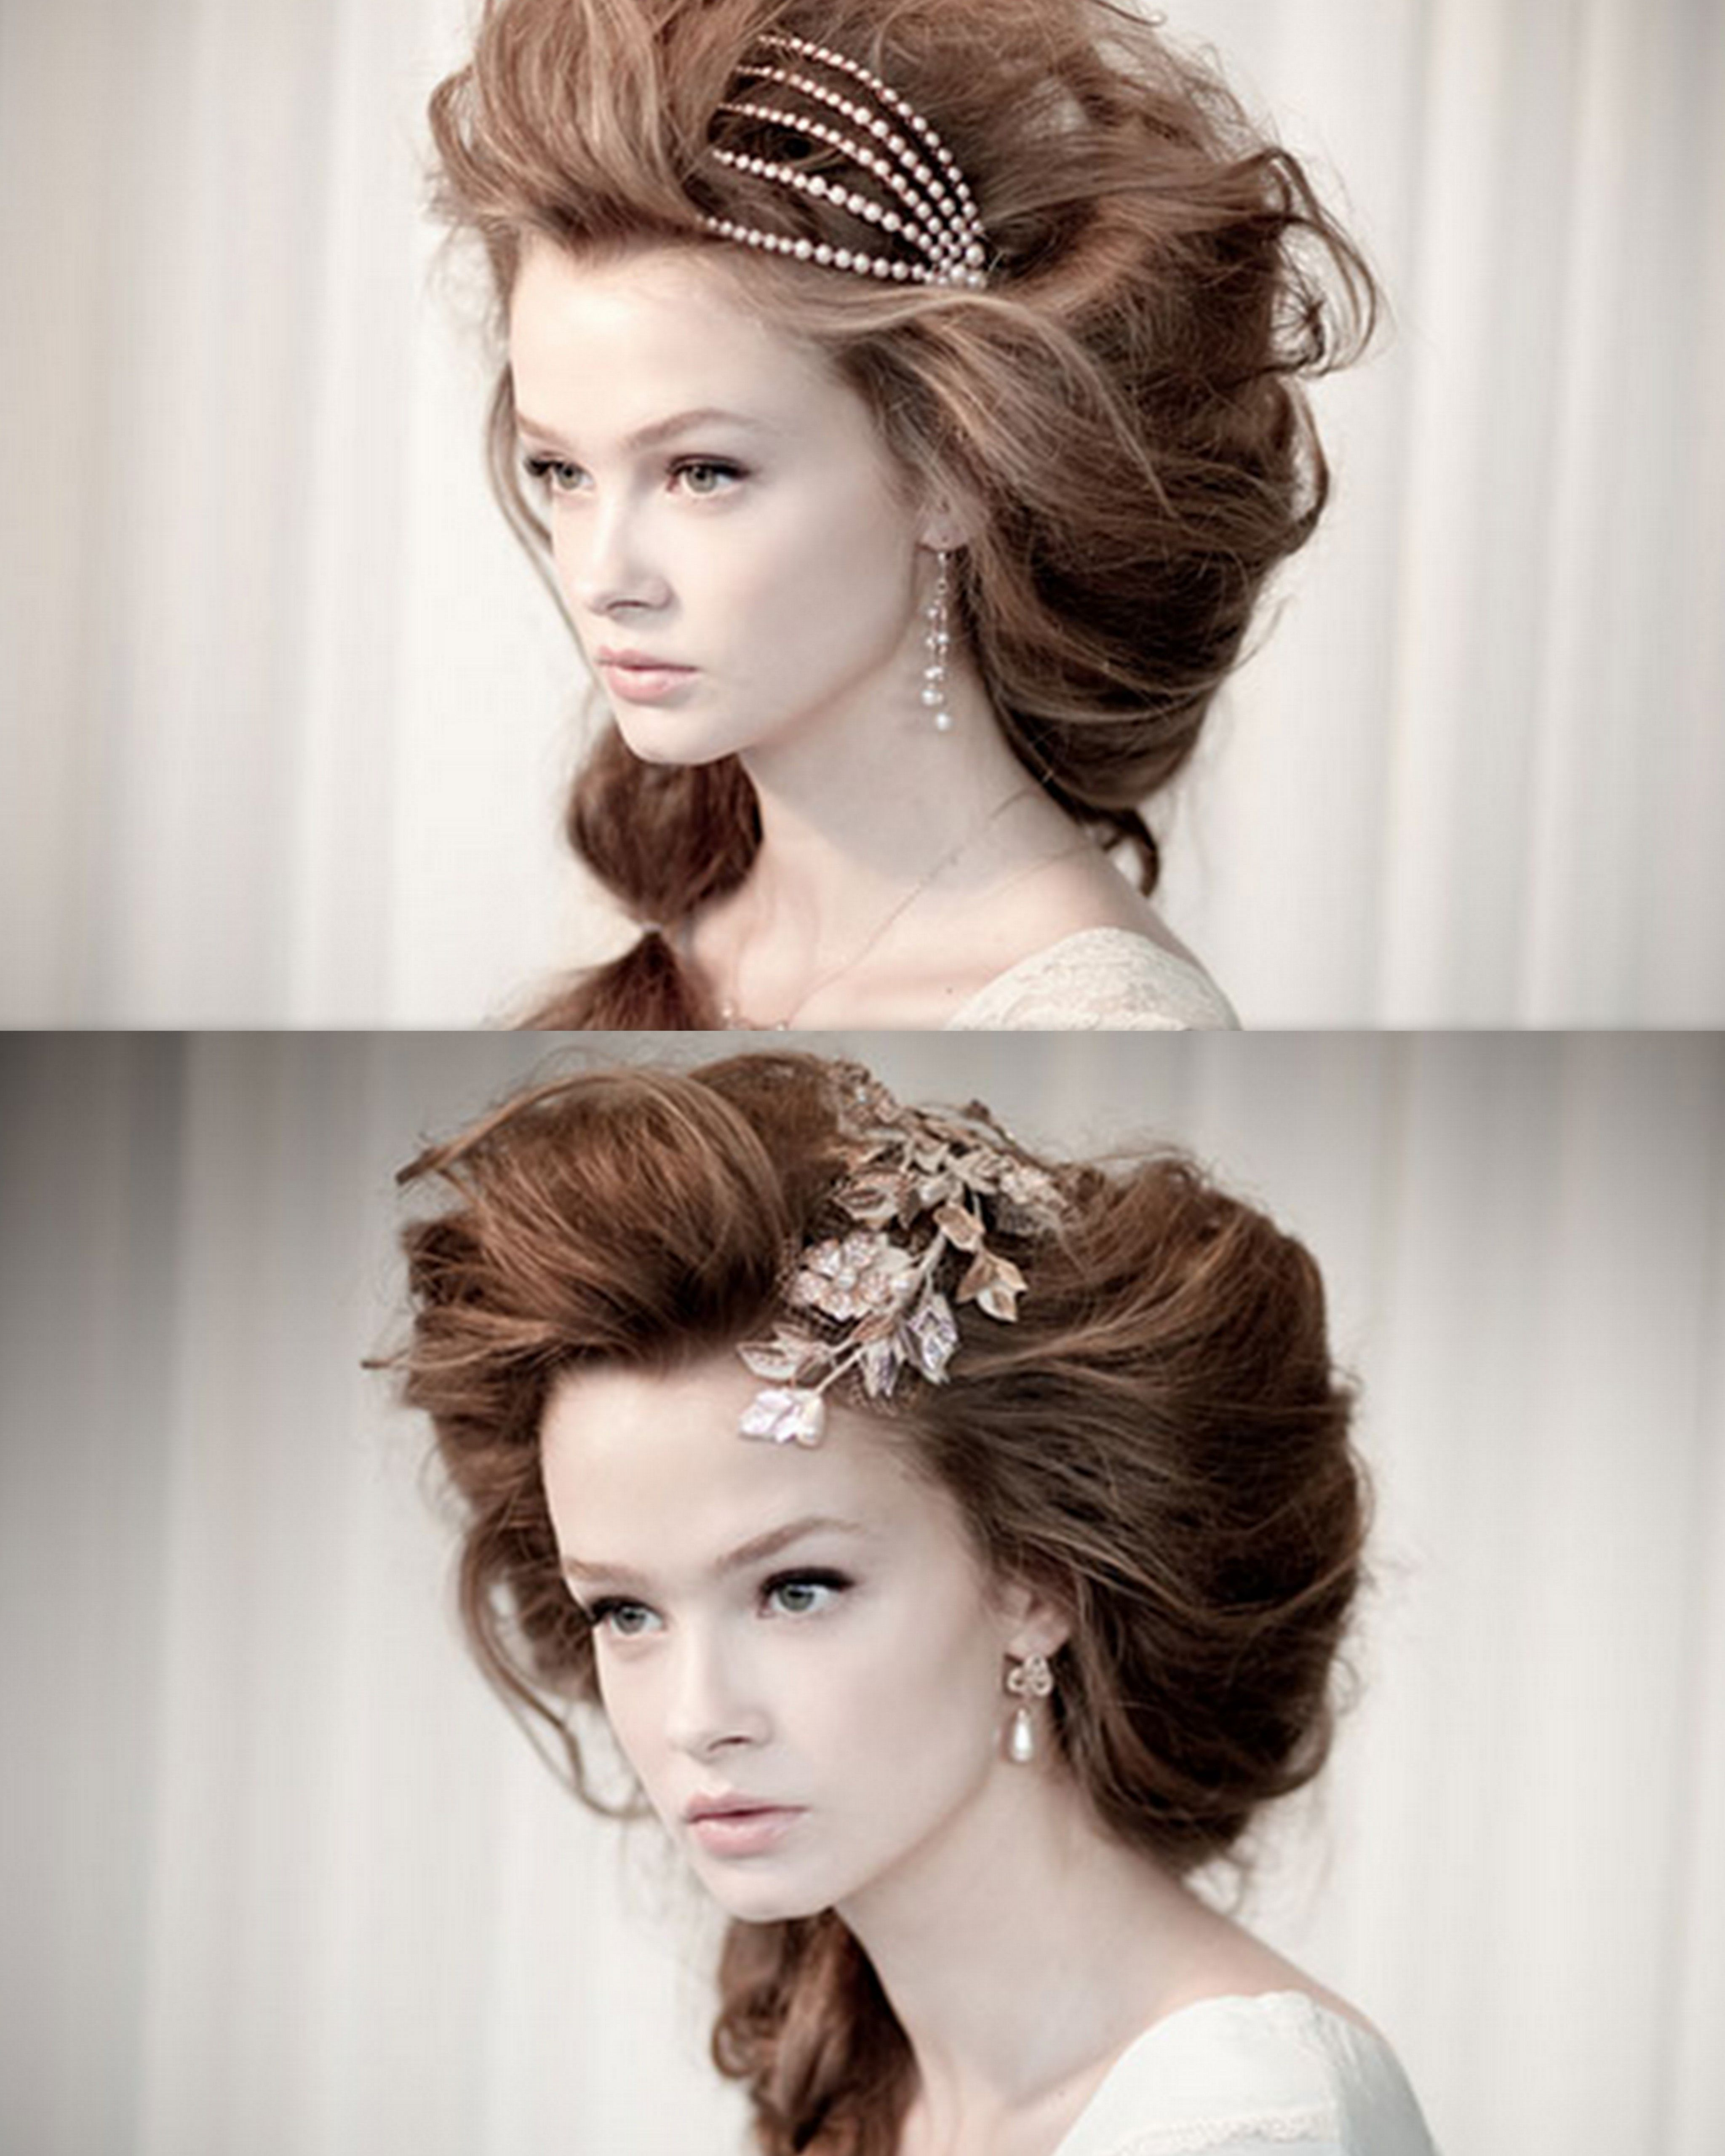 go avant garde for your big night out! formalize your